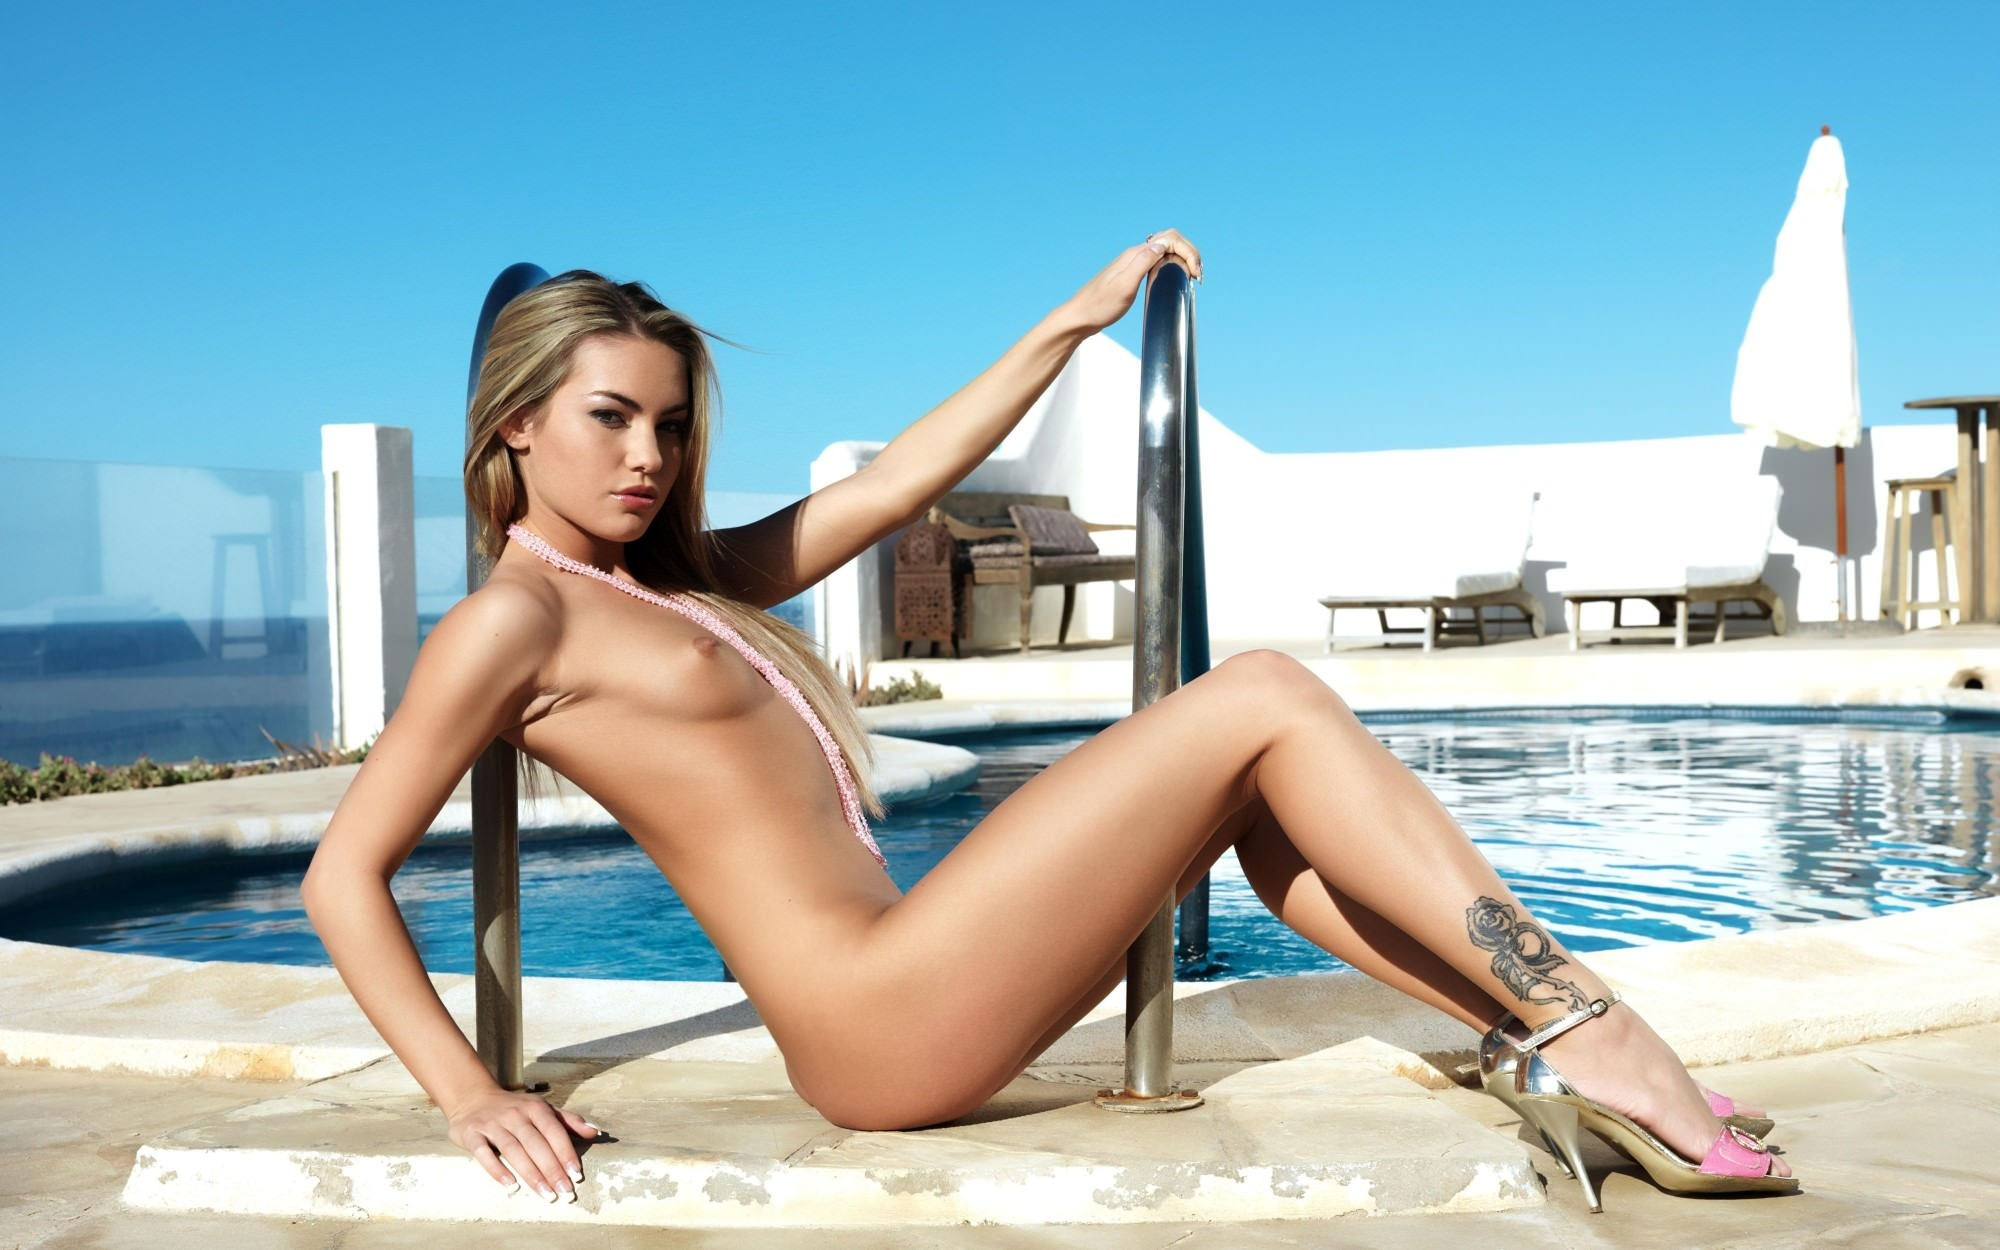 Magazine naked women with legs open